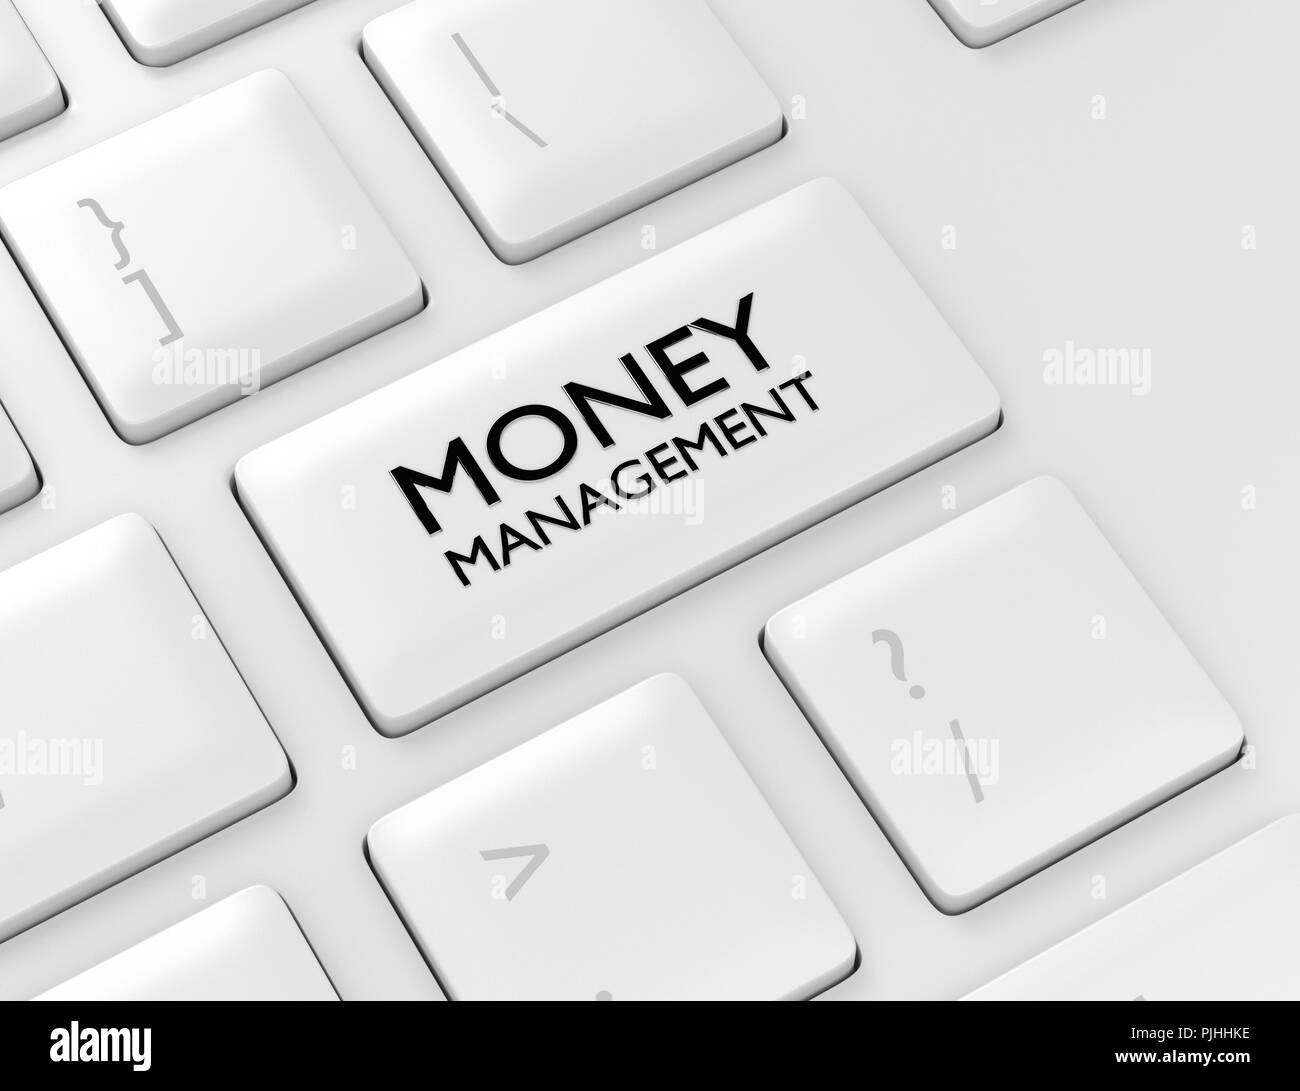 3d render of computer keyboard with MONEY MANAGEMENT button. Stock market subject. - Stock Image